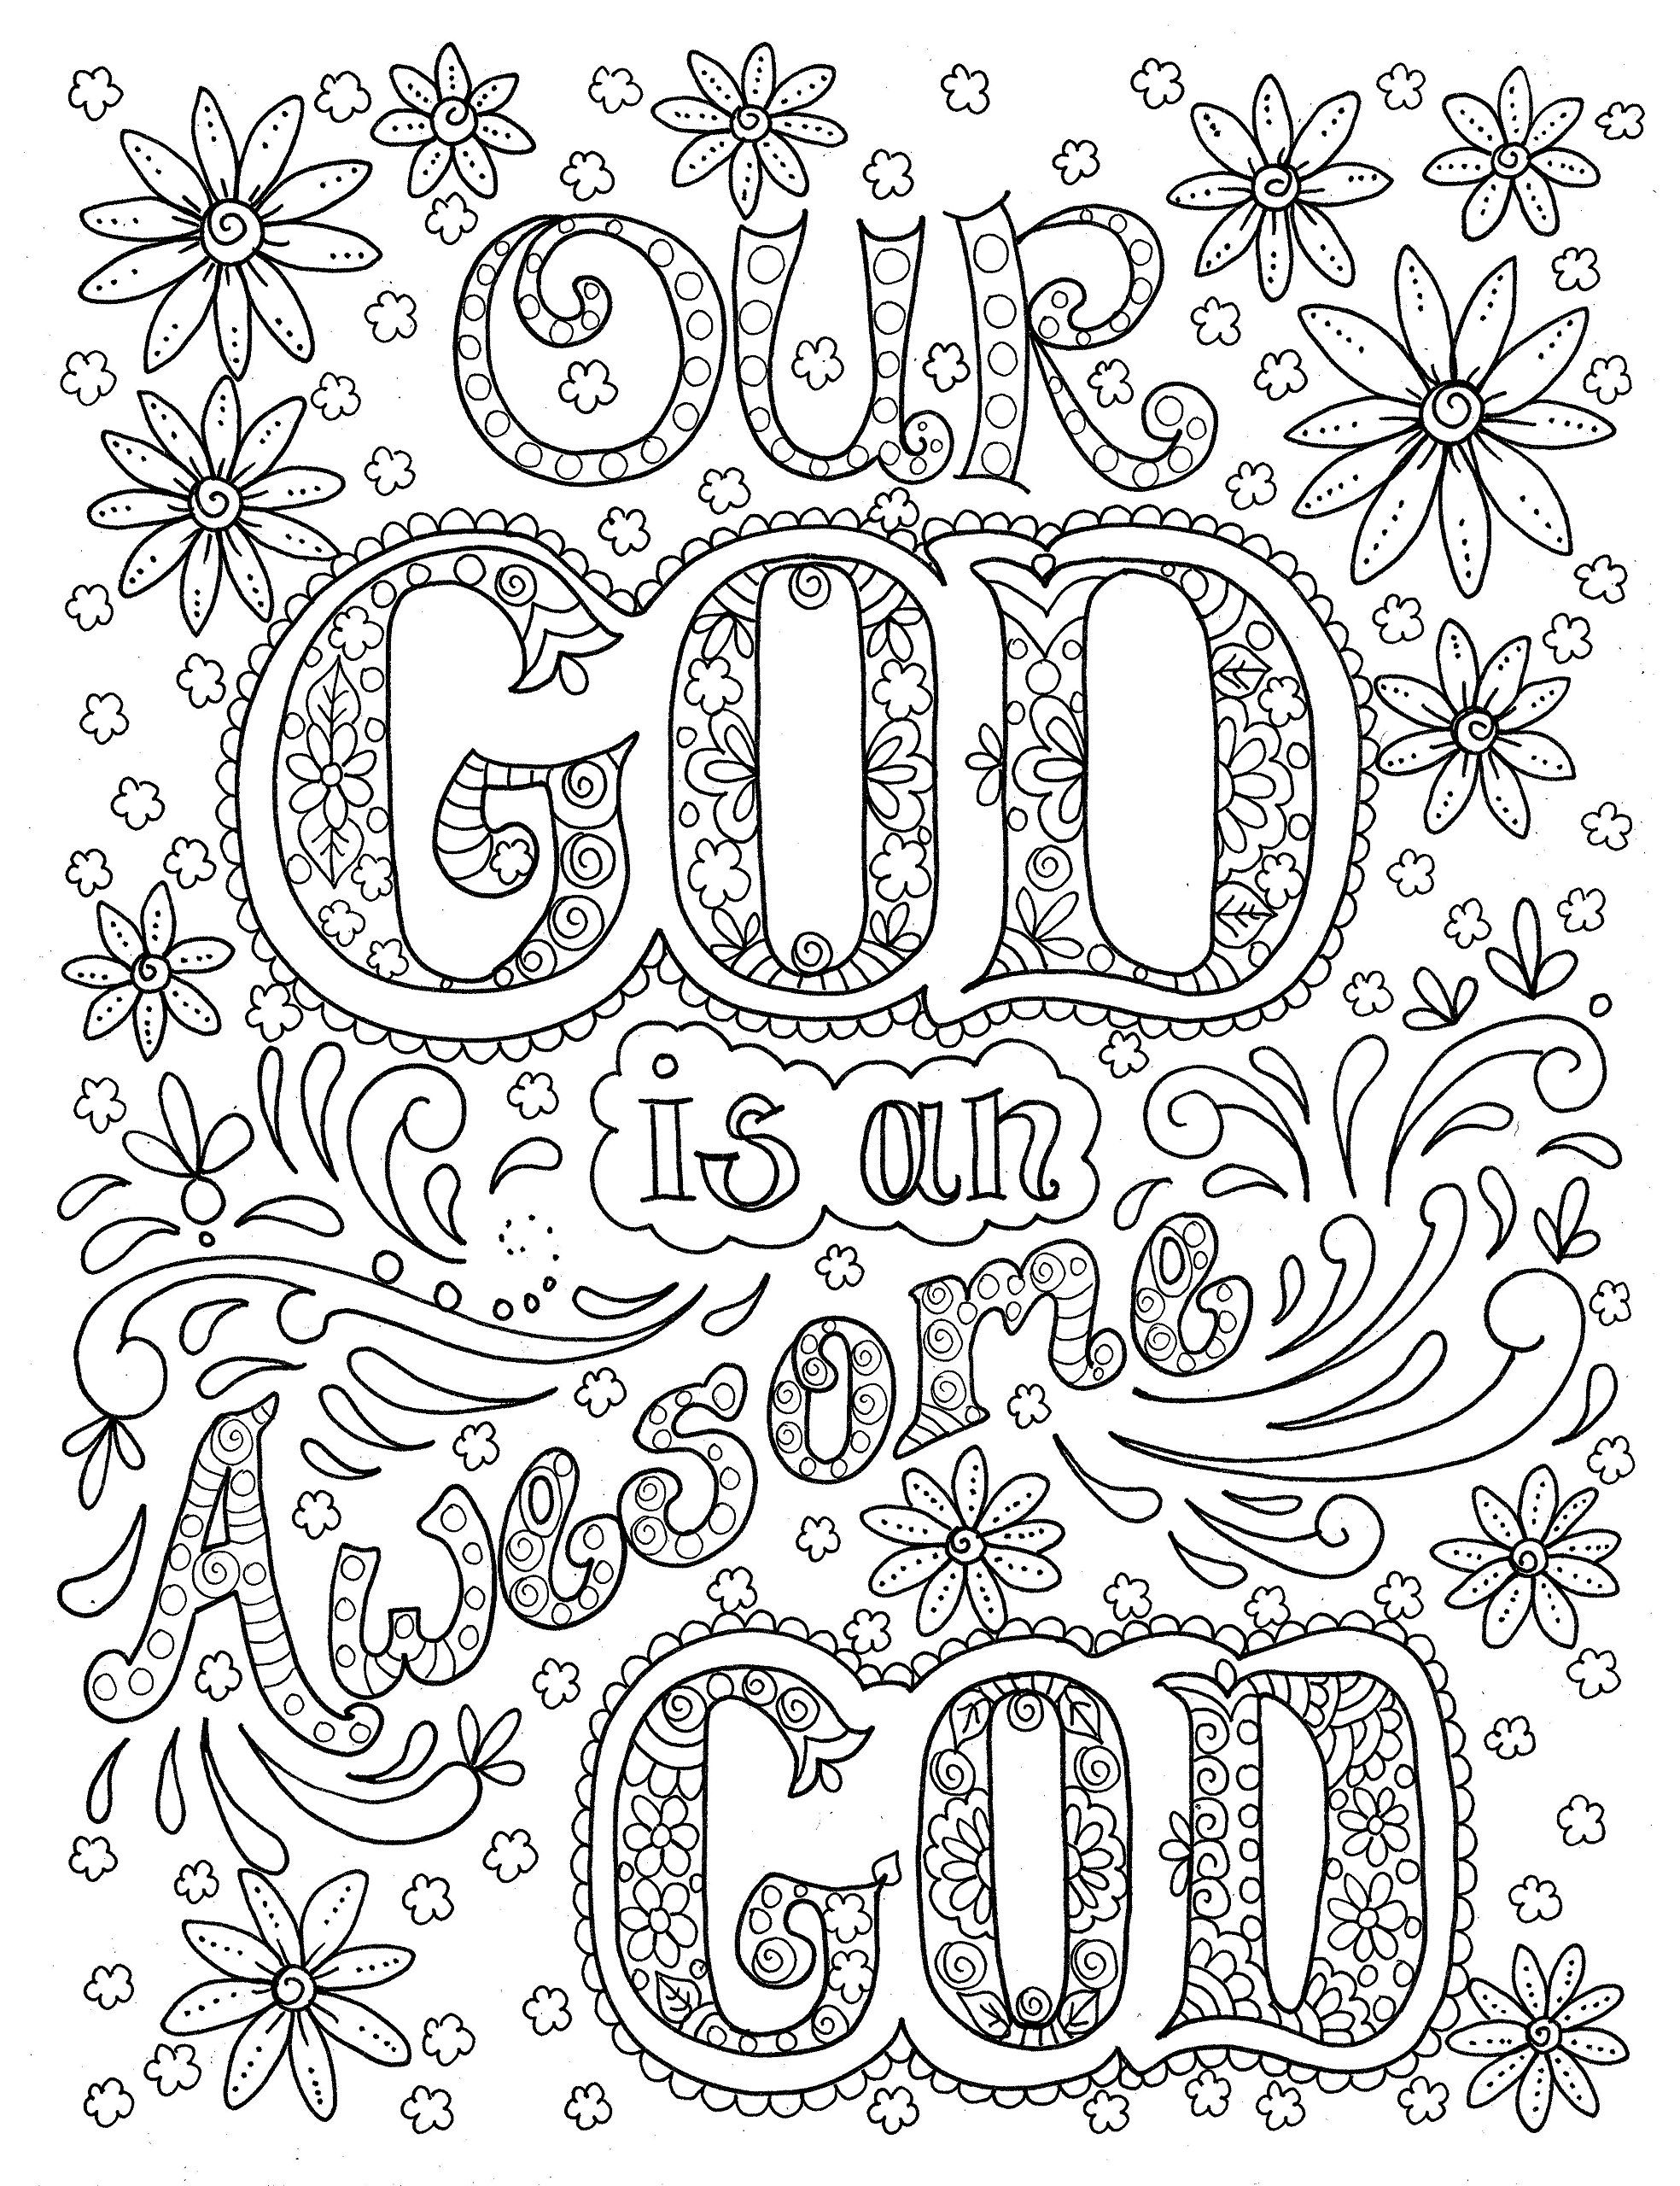 free printable bible coloring pages for children free printable bible coloring pages for kids coloring children free printable for bible pages